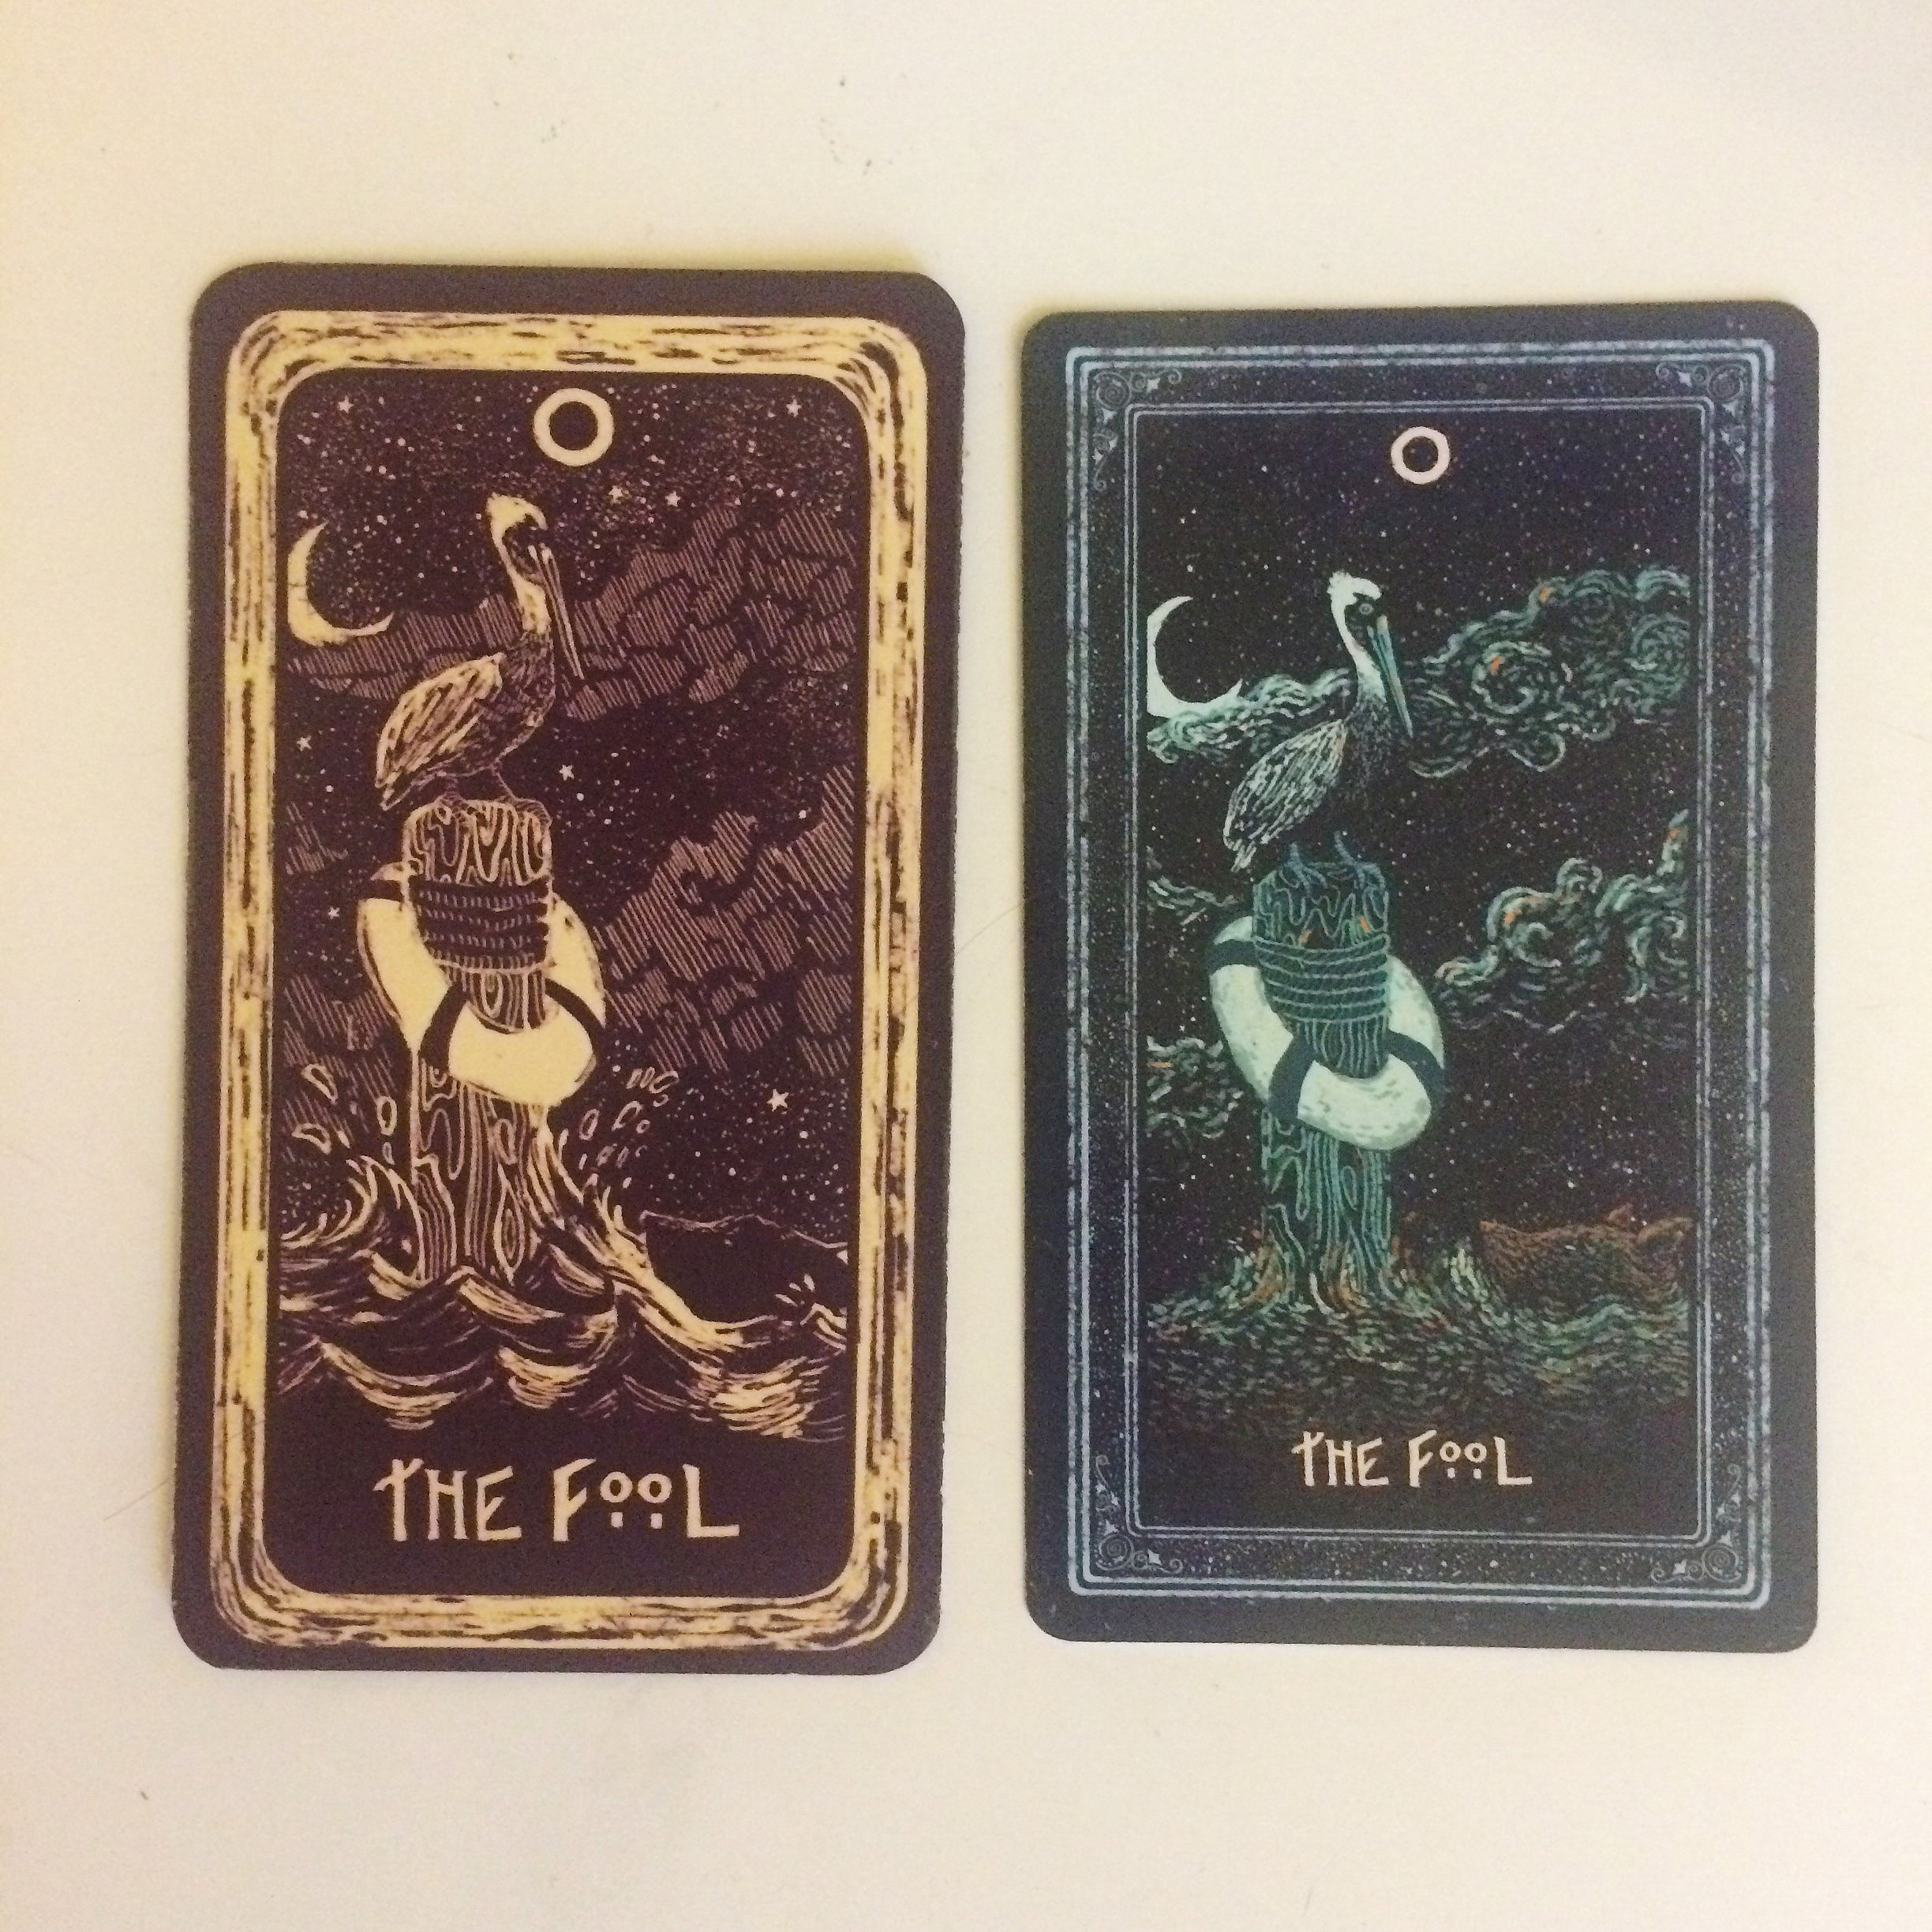 "Depictions of The Fool in James R. Eads' ""Light Visions"" and ""Prisma Visions"" tarot decks. The booklet calls the wolf Foolish for swimming out too far, but I've always thought pelicans were pretty Foolish - they look awkward but fly far."